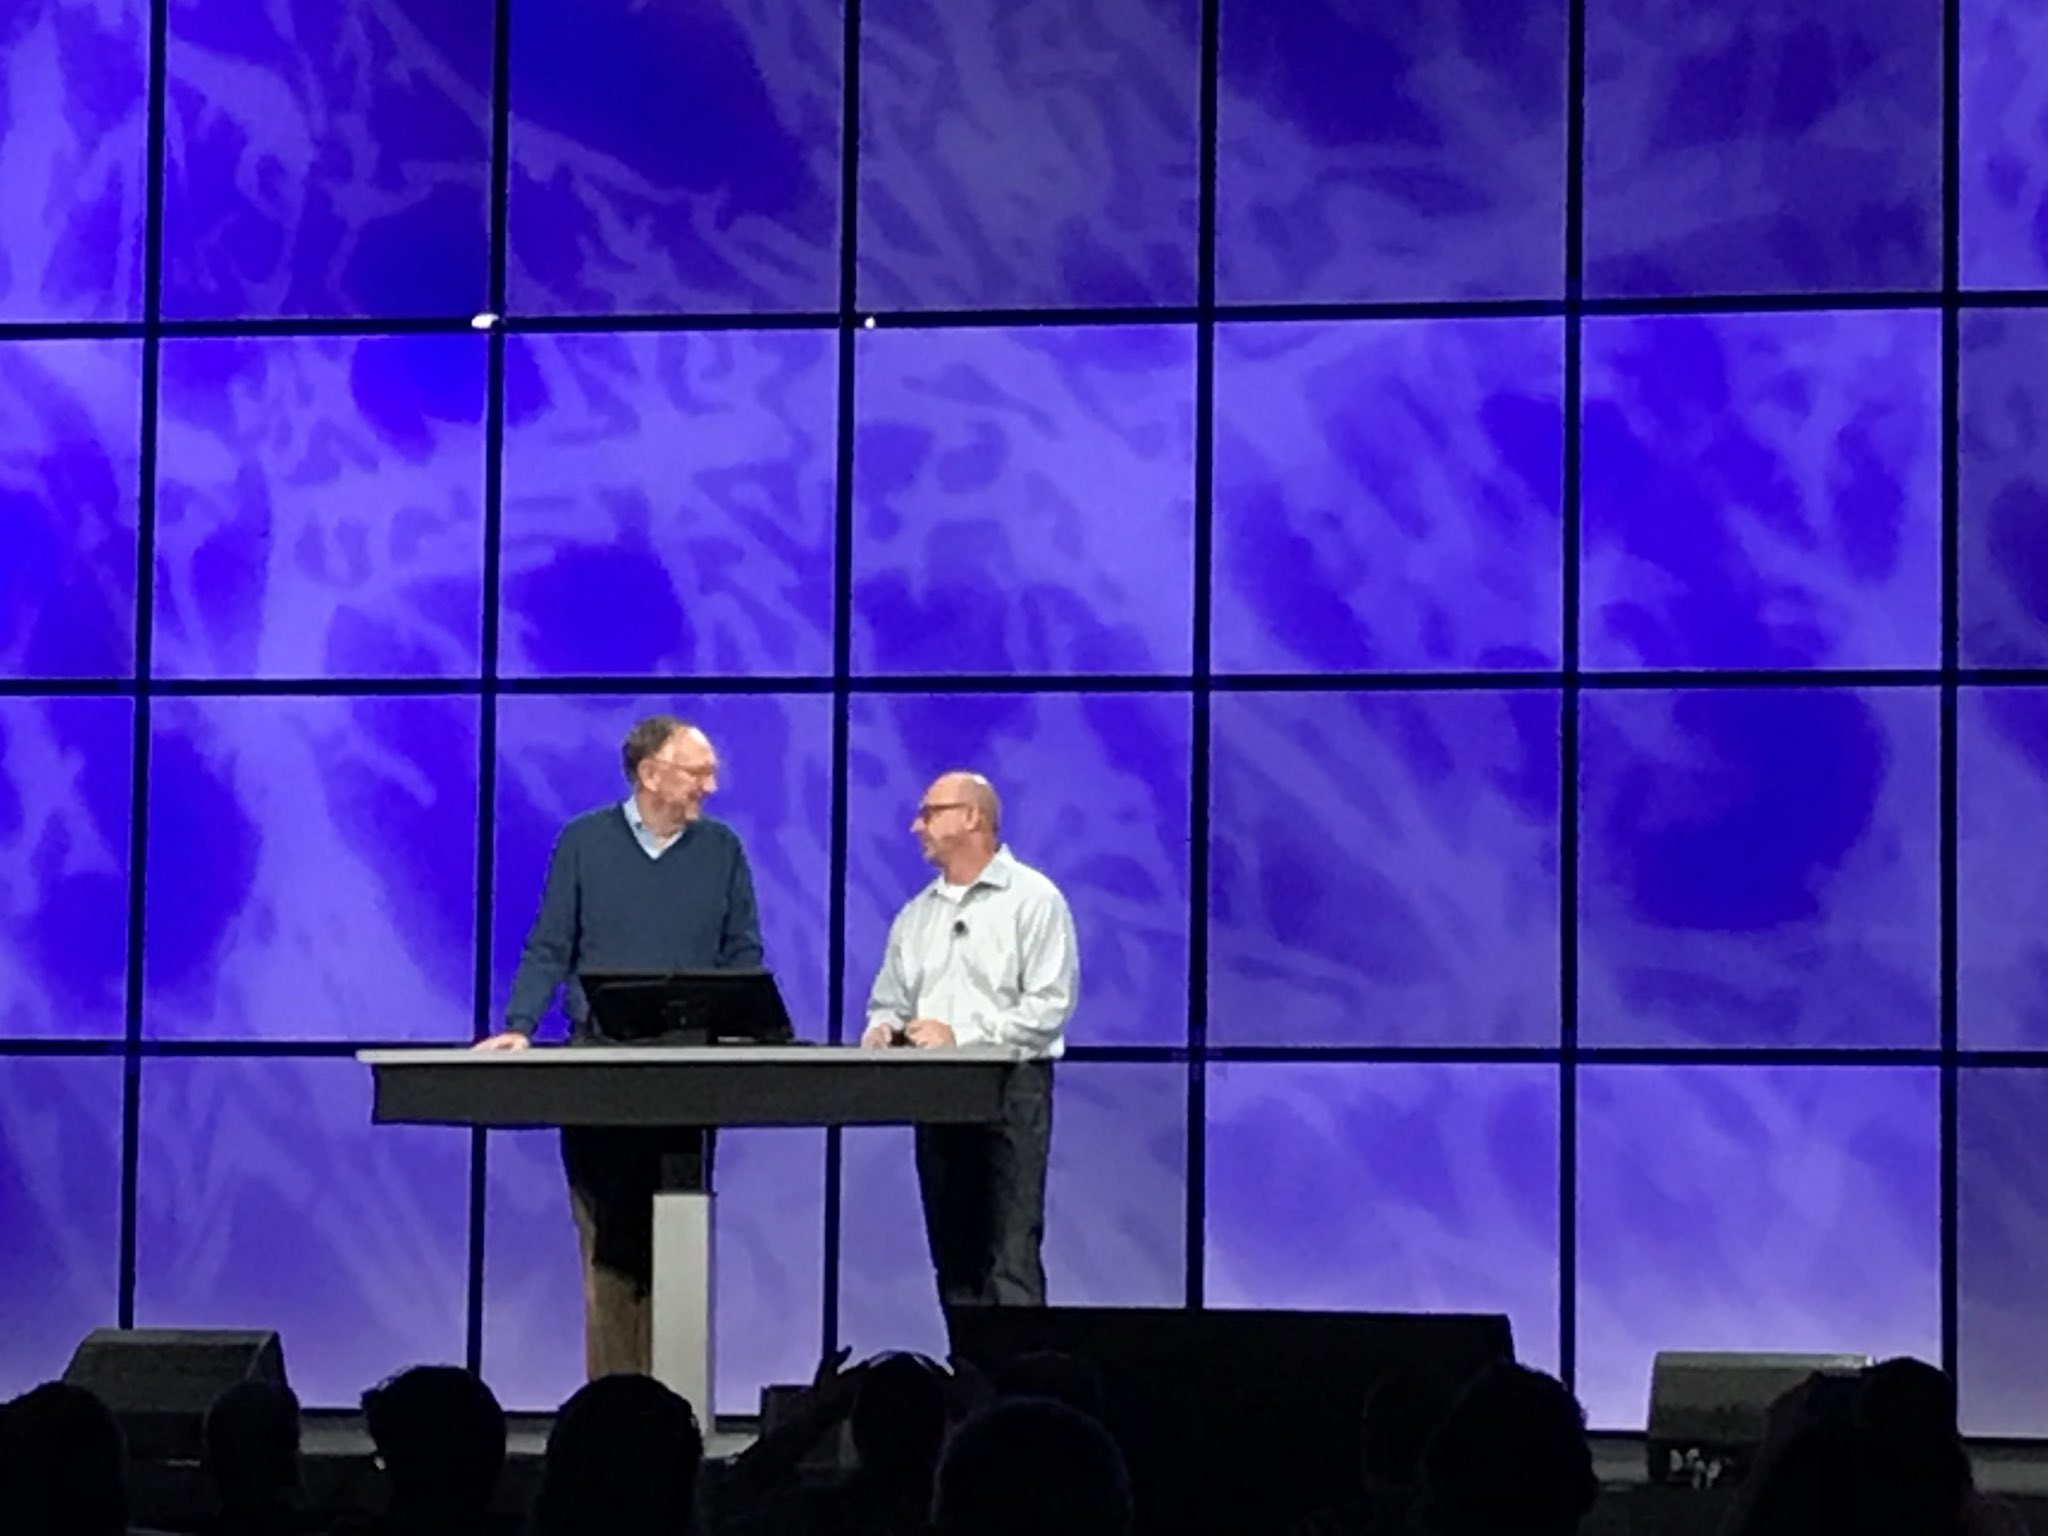 Jack Dangermond and Jim McKInney - DevSummit 2018